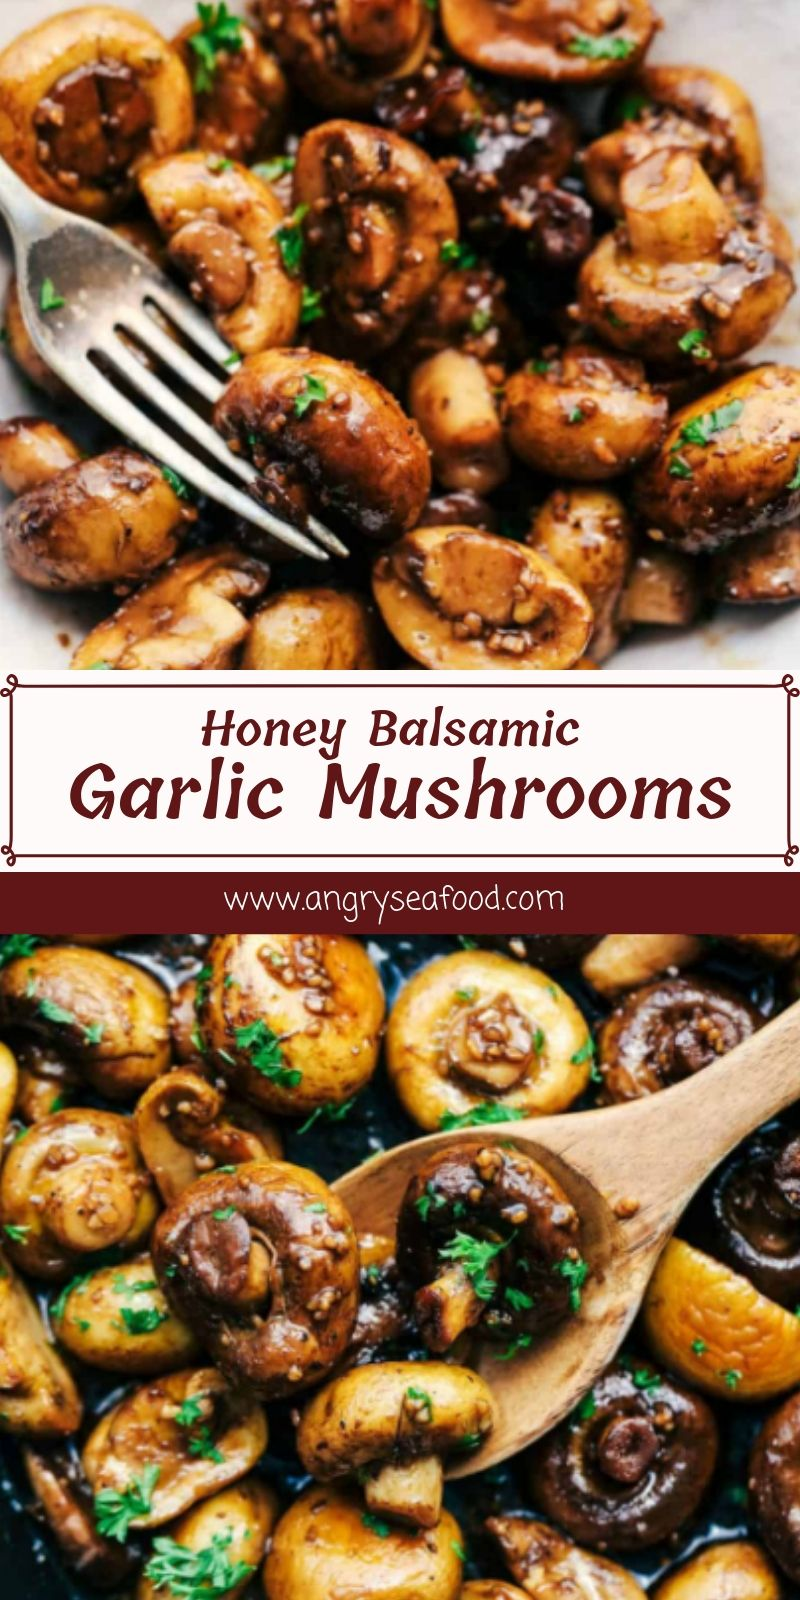 Honey Balsamic Garlic Mushrooms